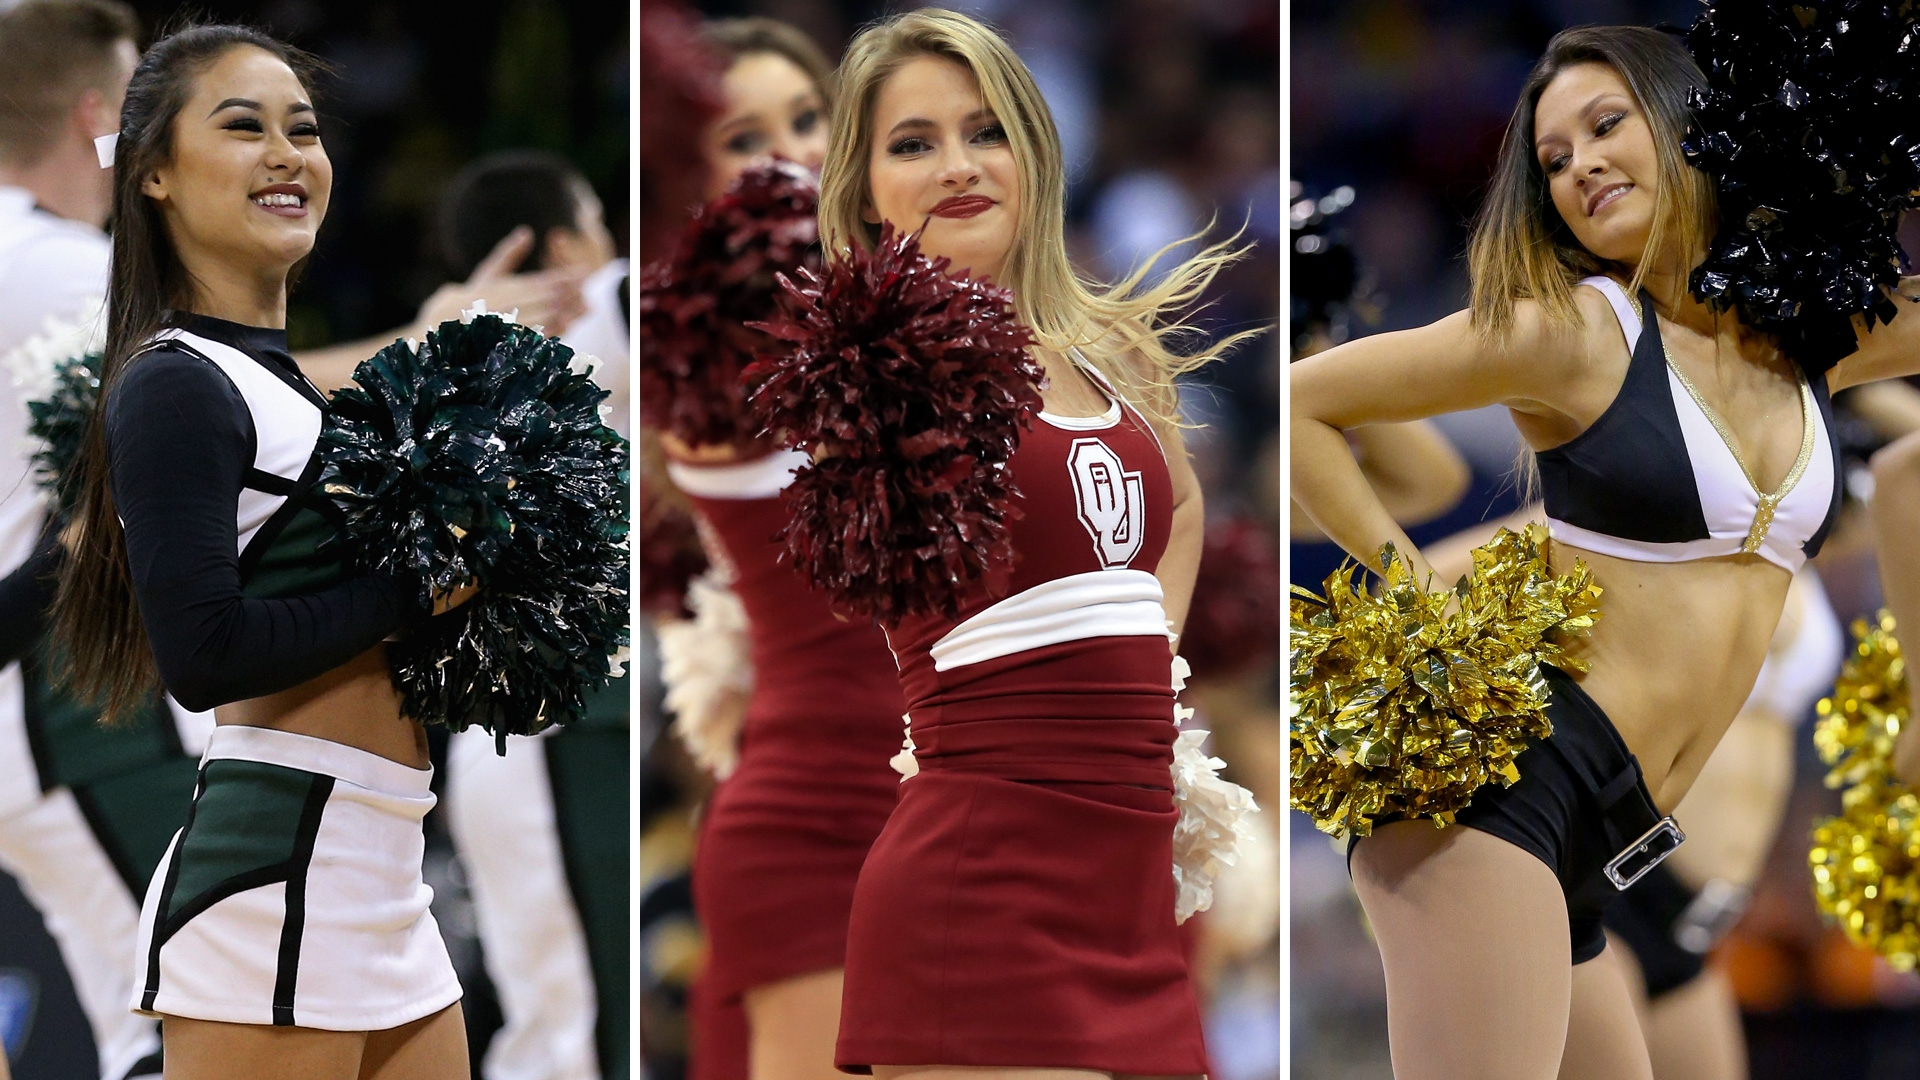 NCAA College Basketball News, Scores, Schedule & Standings | Sporting News